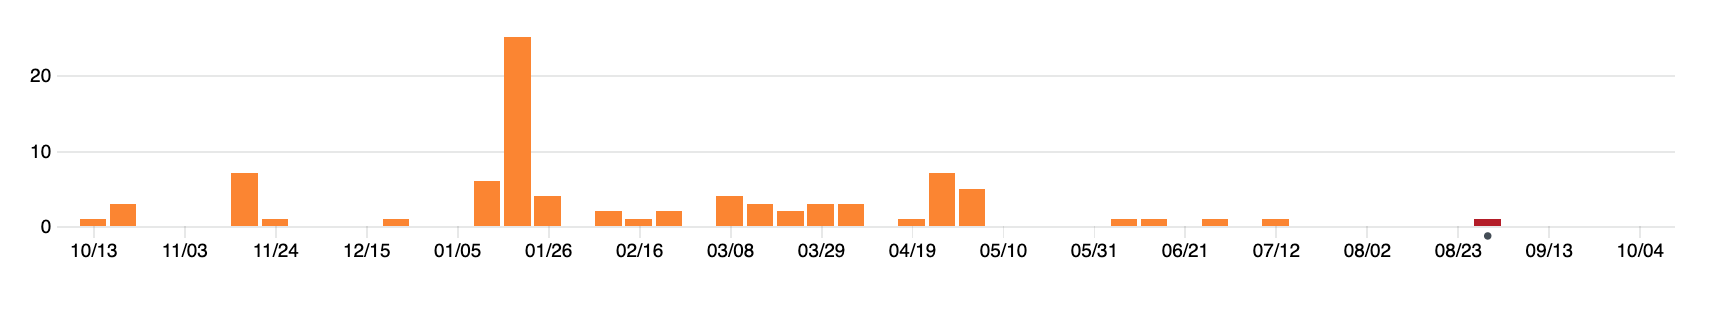 Commits in the last months